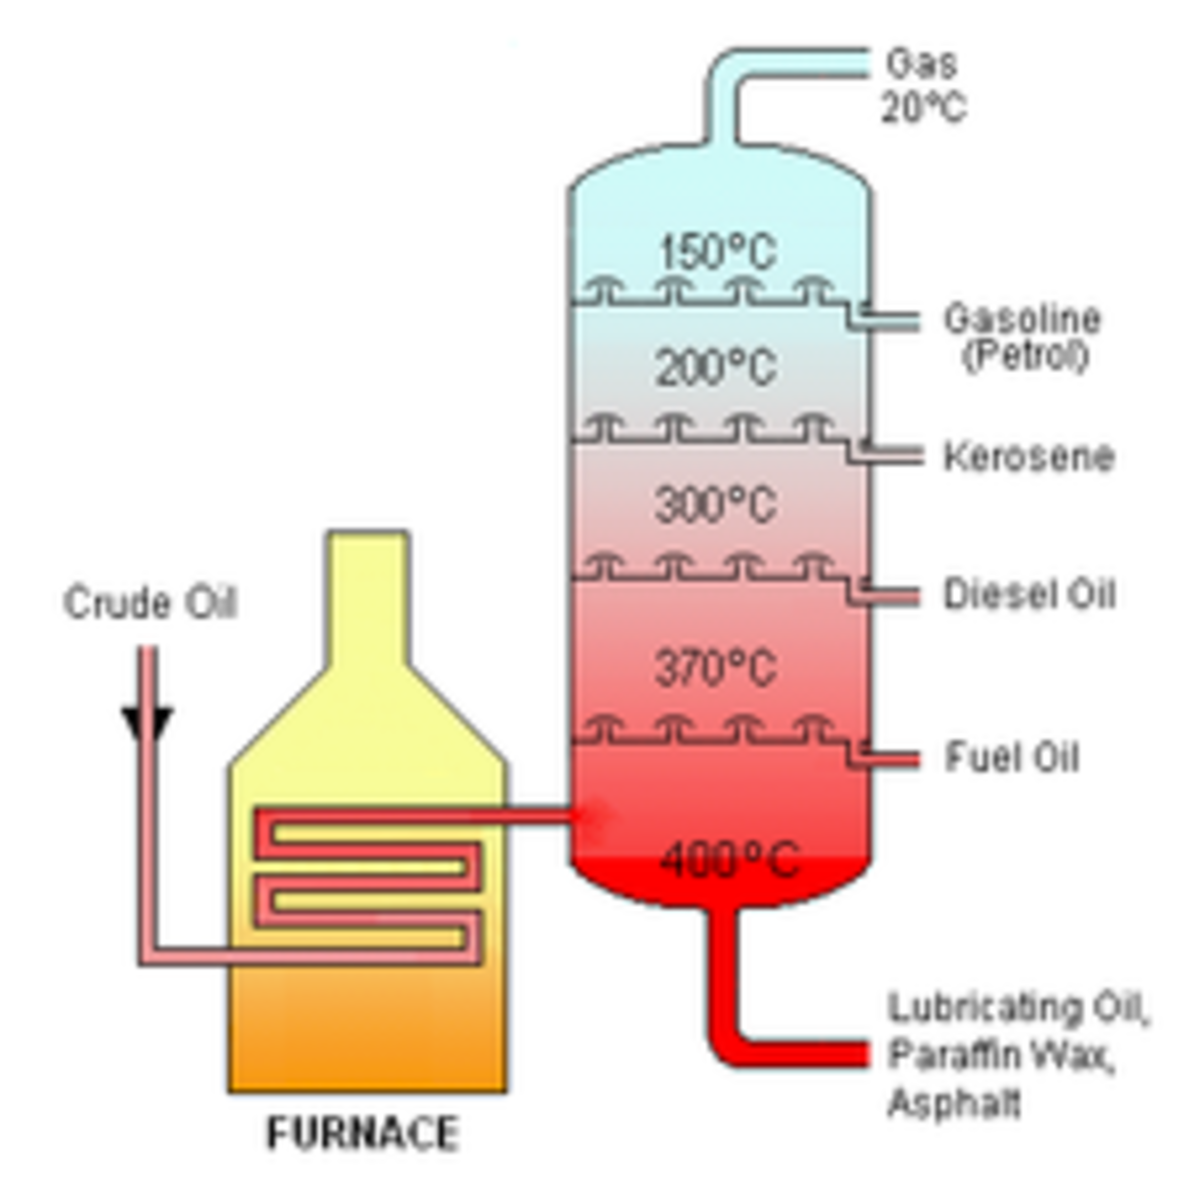 A Level Organic Chemistry Notes: Refining crude oil, definition of